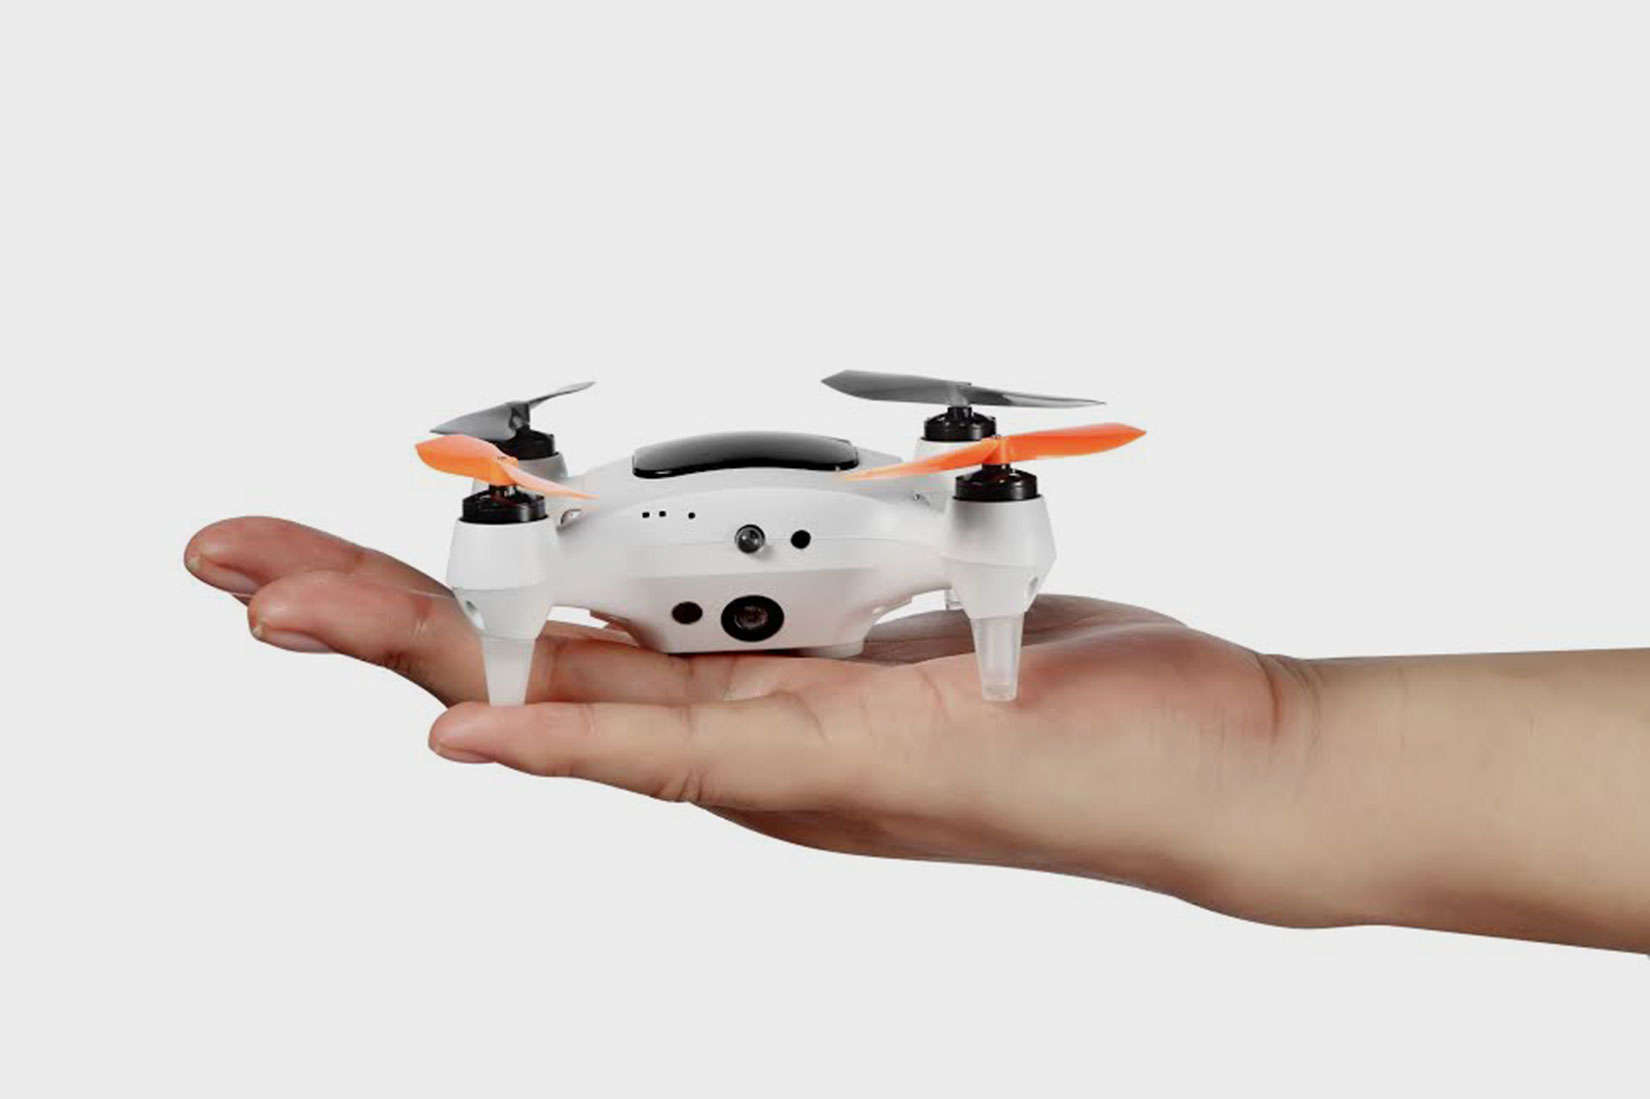 The little drone that carries a big camera.